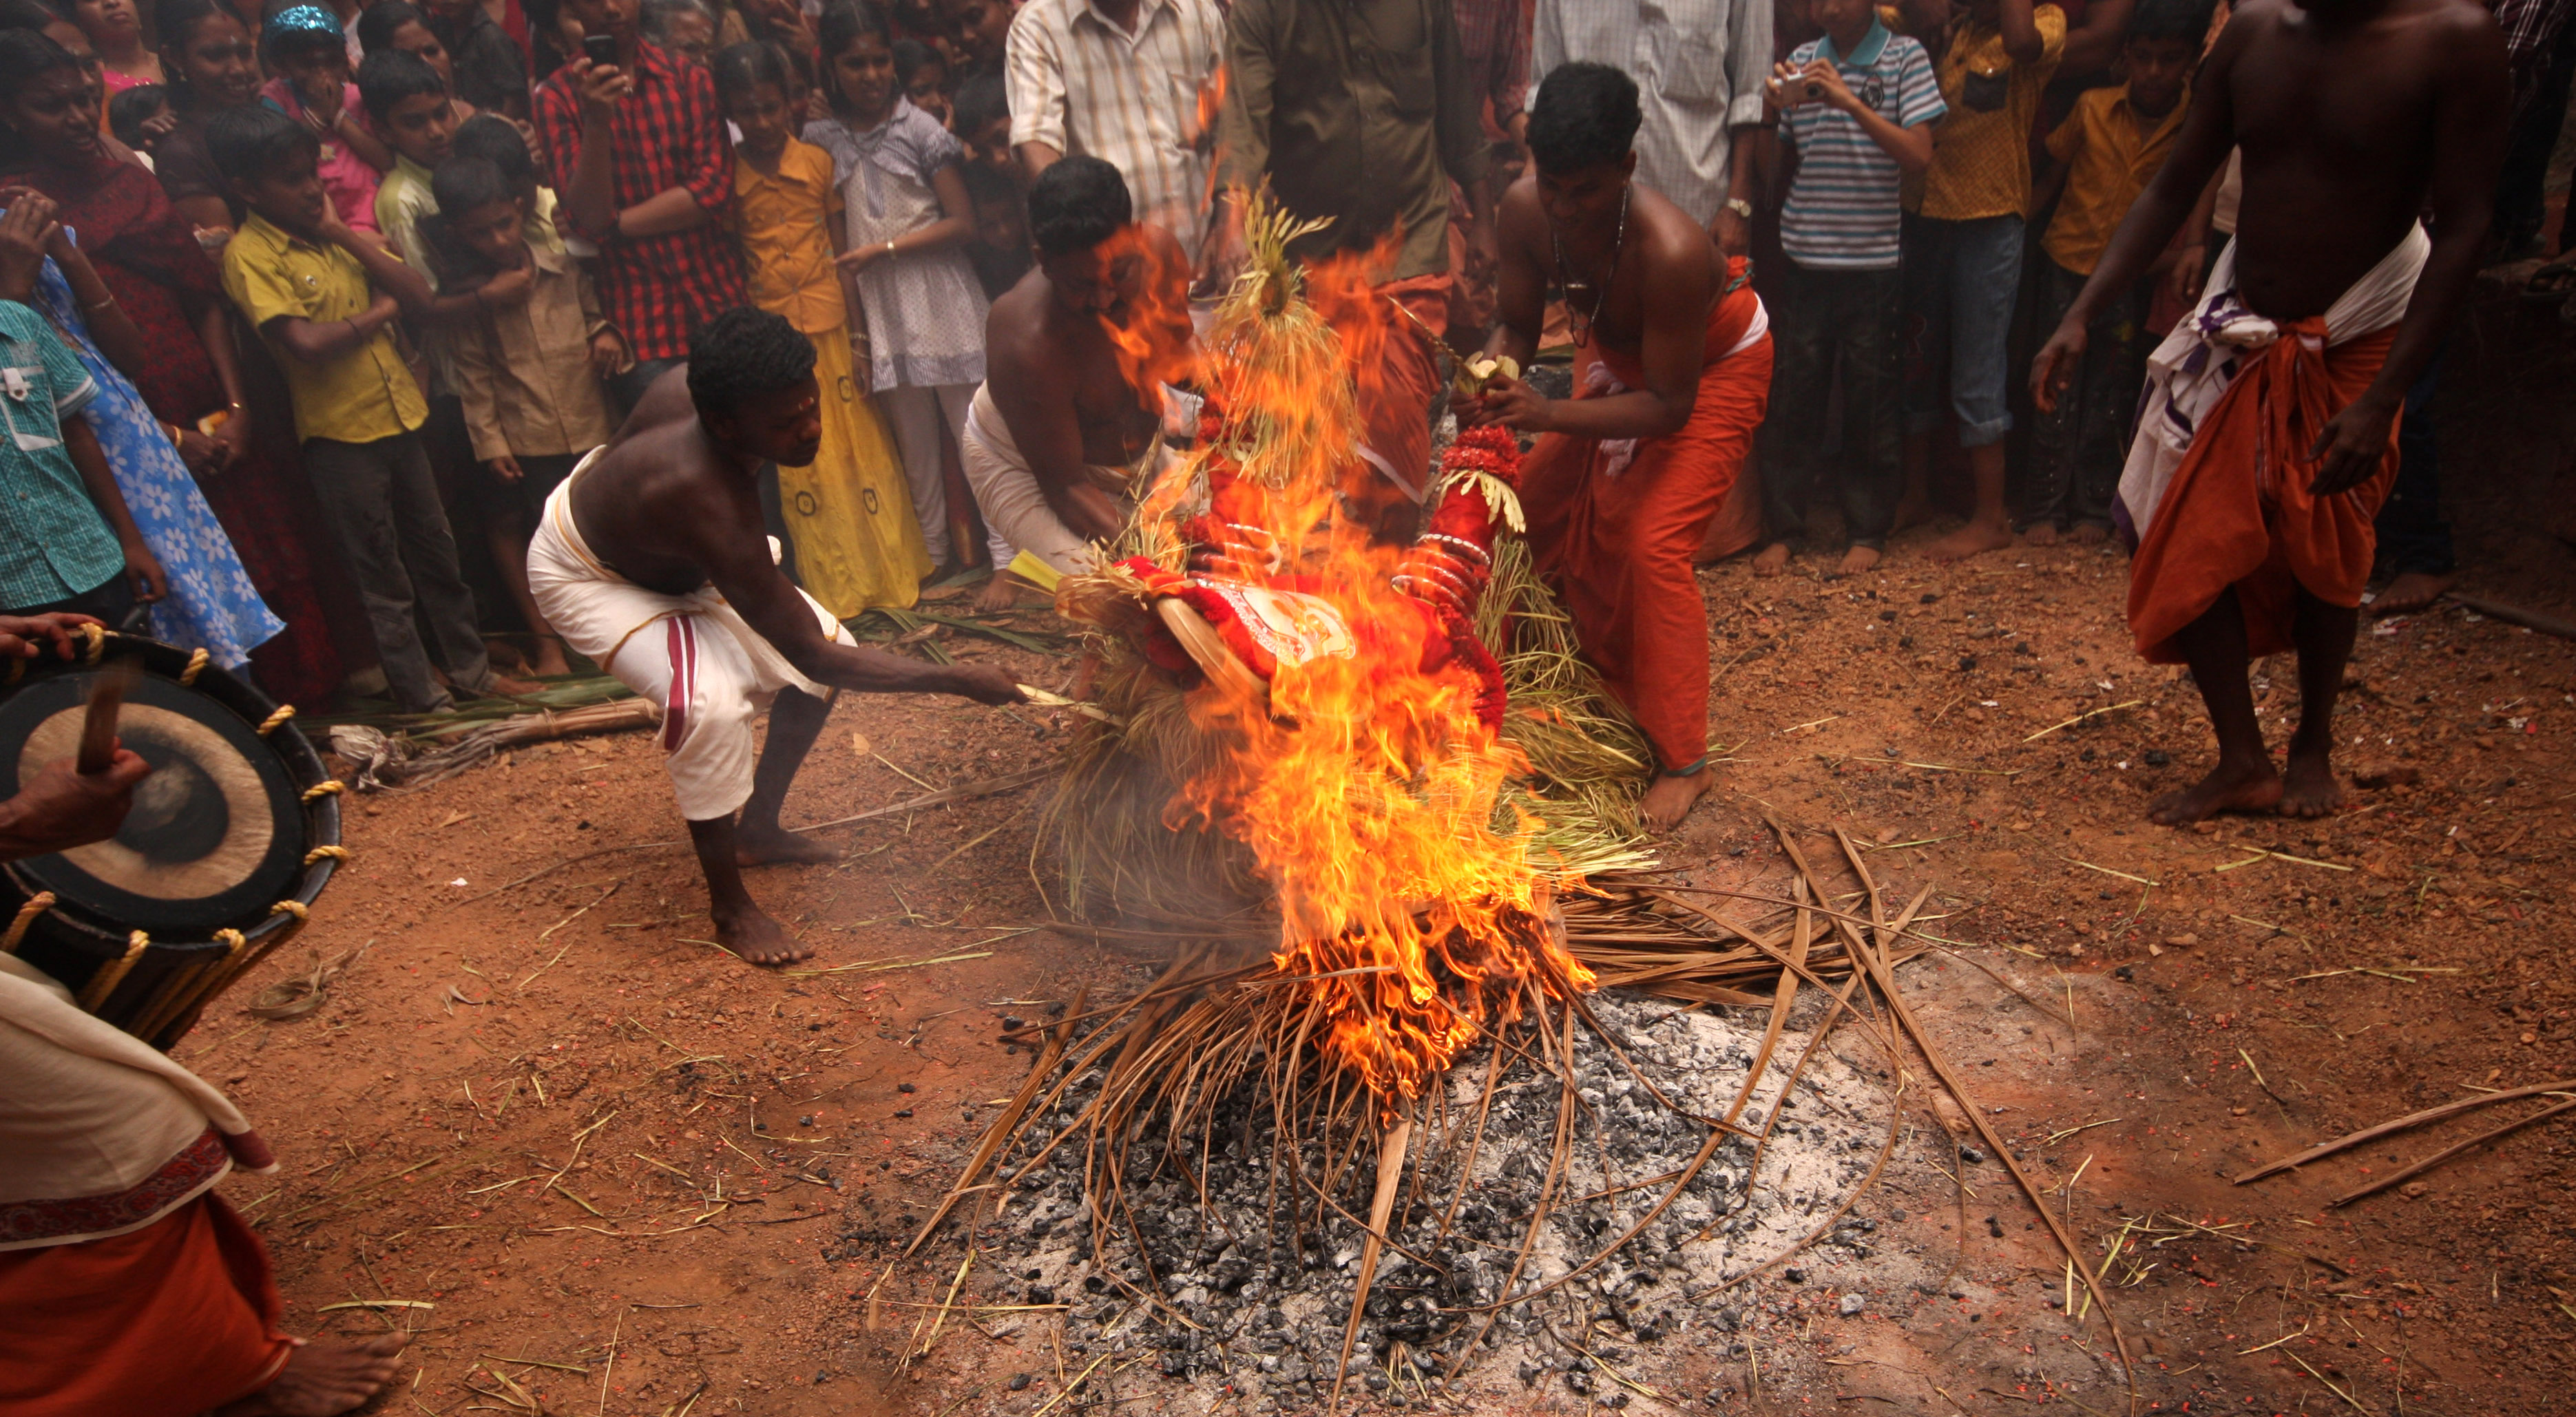 "bride burning in india The underbelly of the dowry system revolves around the treatment of brides referred to as ""bride-burning"", the act of maiming or even killing brides whose family cannot or will not meet a groom's dowry demands is a worrying practice in india."